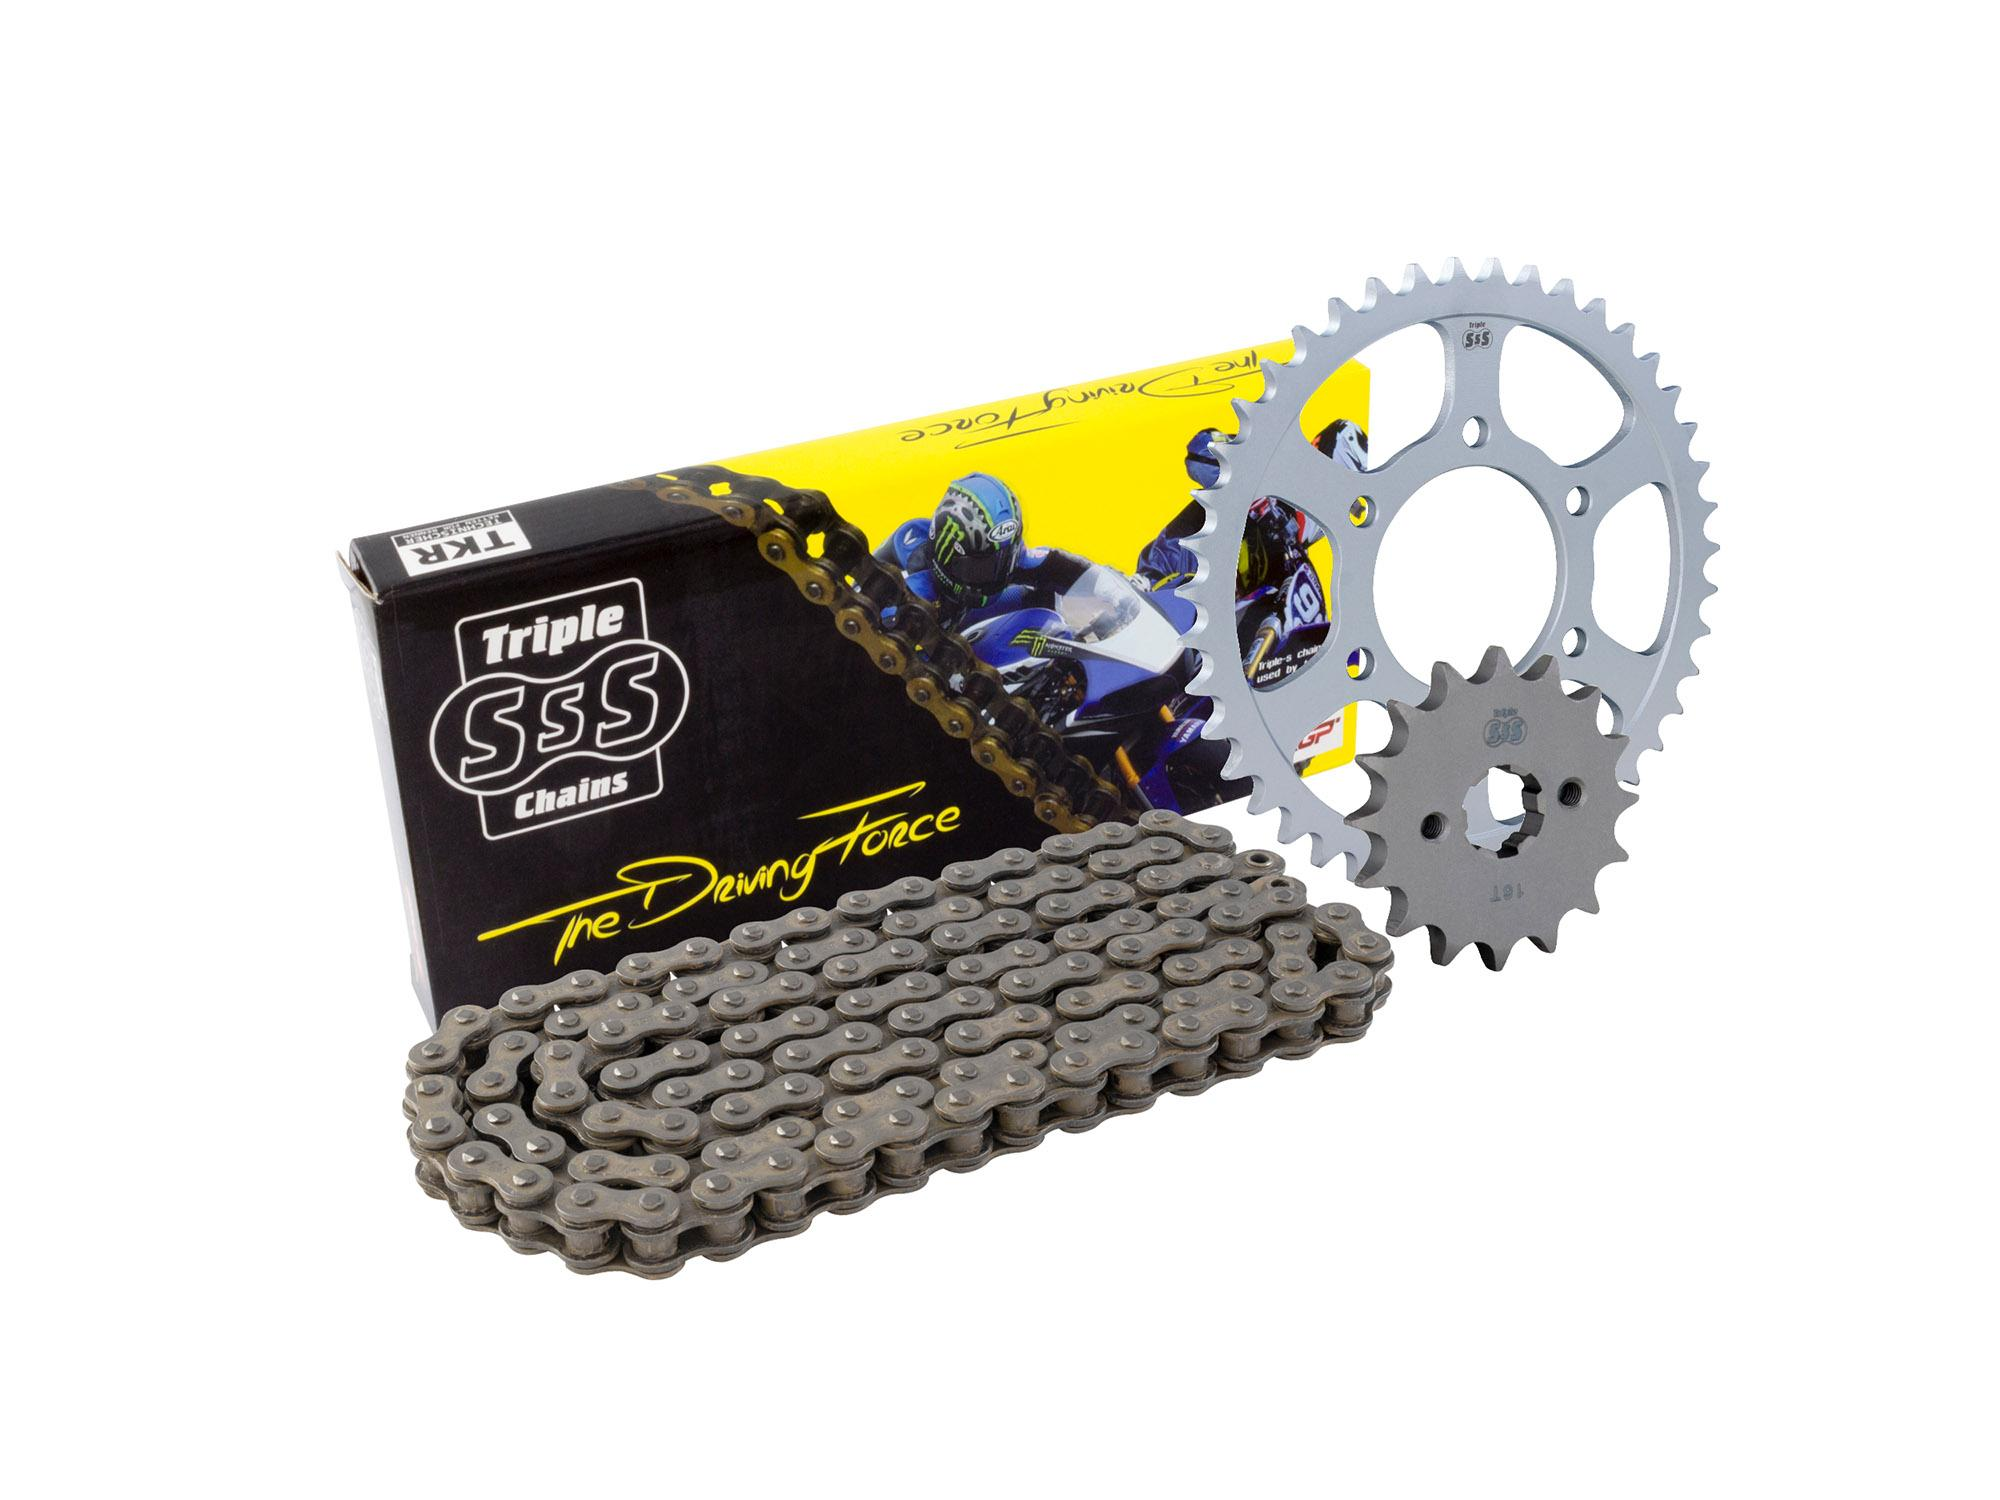 Ducati 696 Monster 08-09 Chain & Sprocket Kit: 15T Front, 45T Rear, HD O-Ring Black Chain 520H 108Link